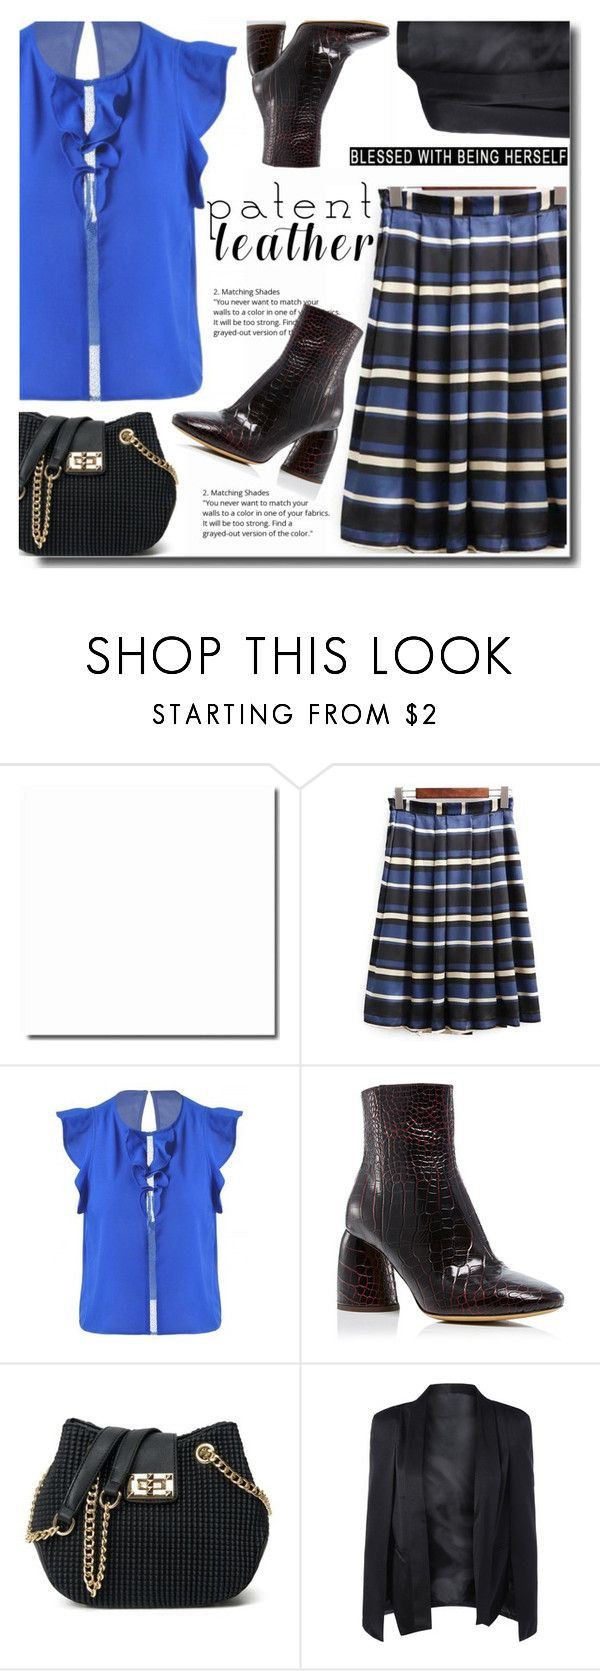 """Black and blue"" by soks ❤ liked on Polyvore featuring E L L E R Y and polyvoreeditorial"